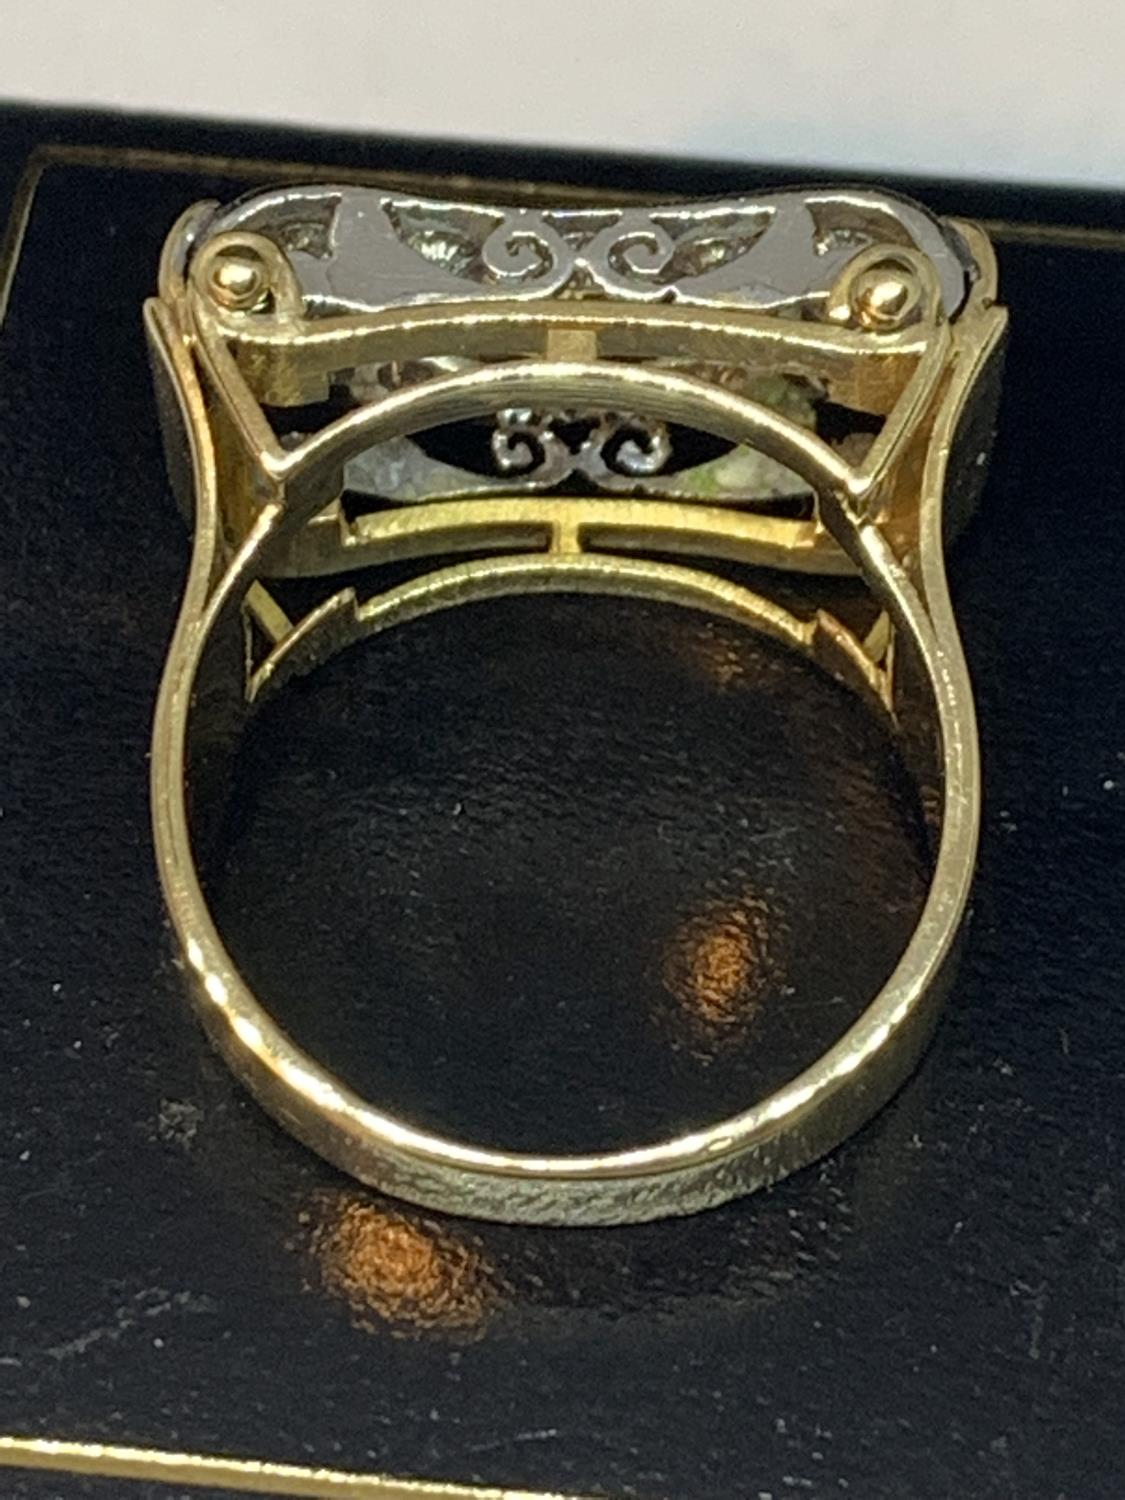 A HEAVY 18 CARAT GOLD RING WITH FIFTEEN DIAMONDS SET IN A RECTANGLE OF DIAMOND CHIPS GROSS WEIGHT 13 - Image 9 of 10